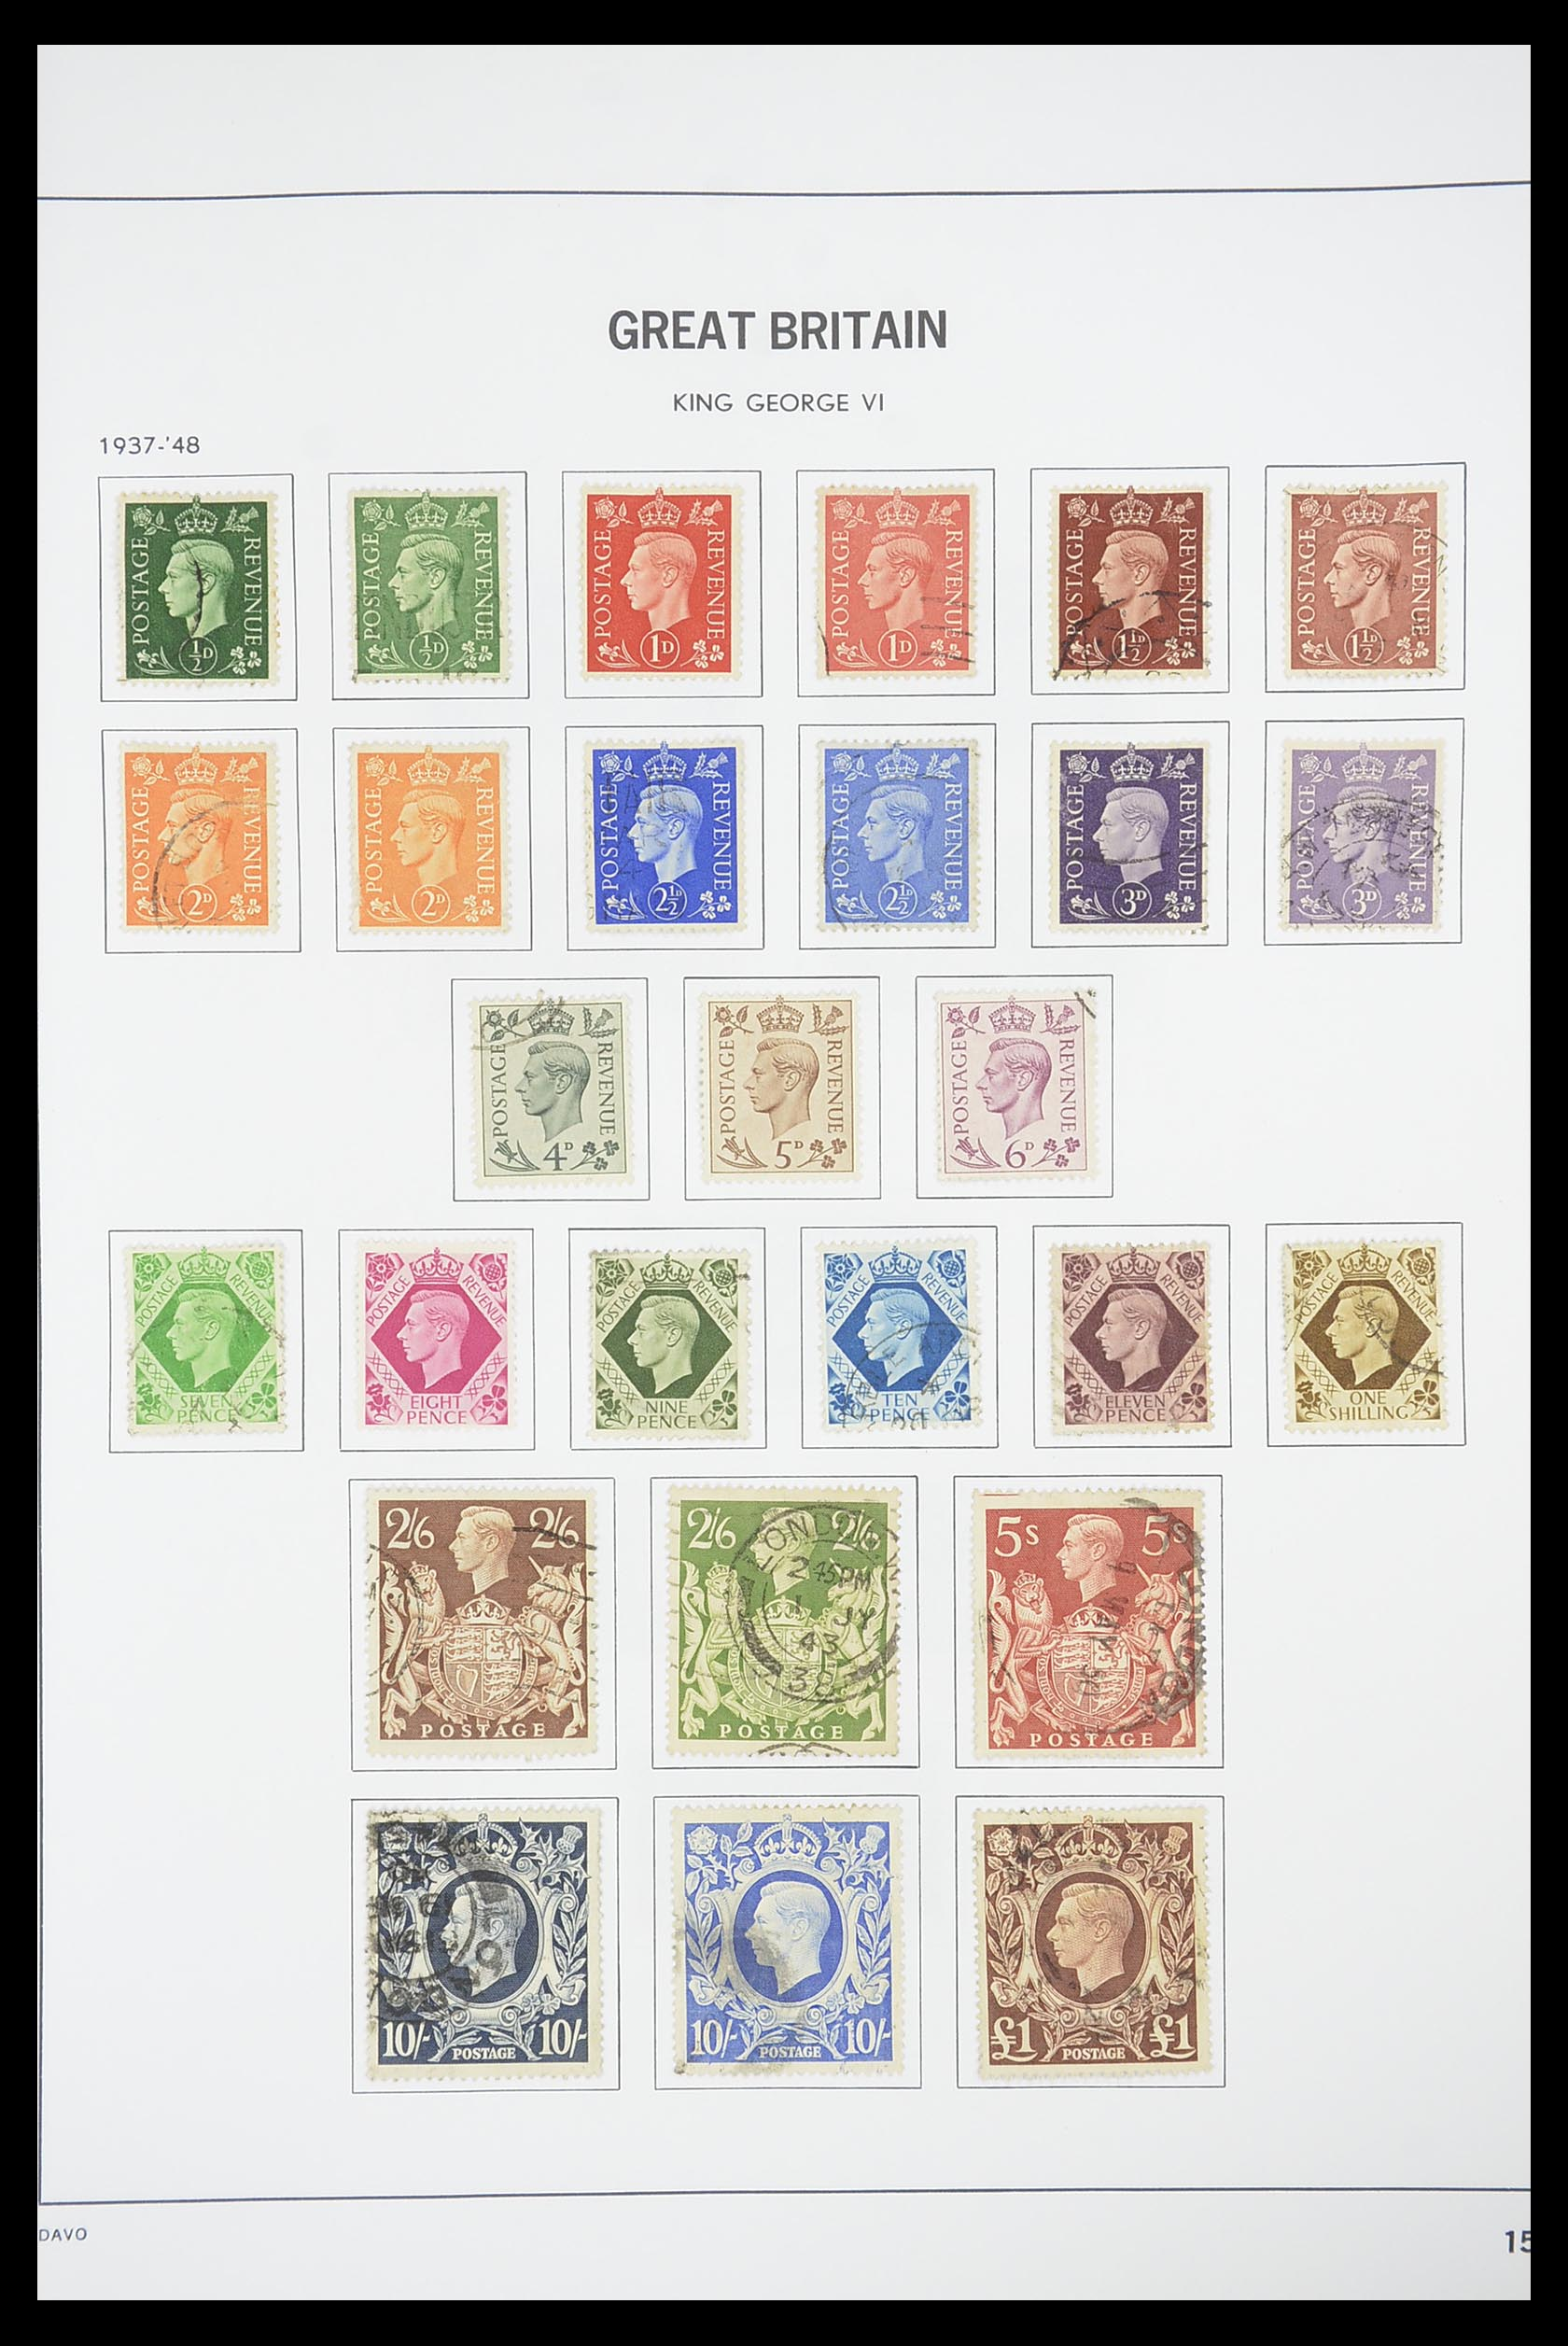 33898 014 - Stamp collection 33898 Great Britain 1840-2006.